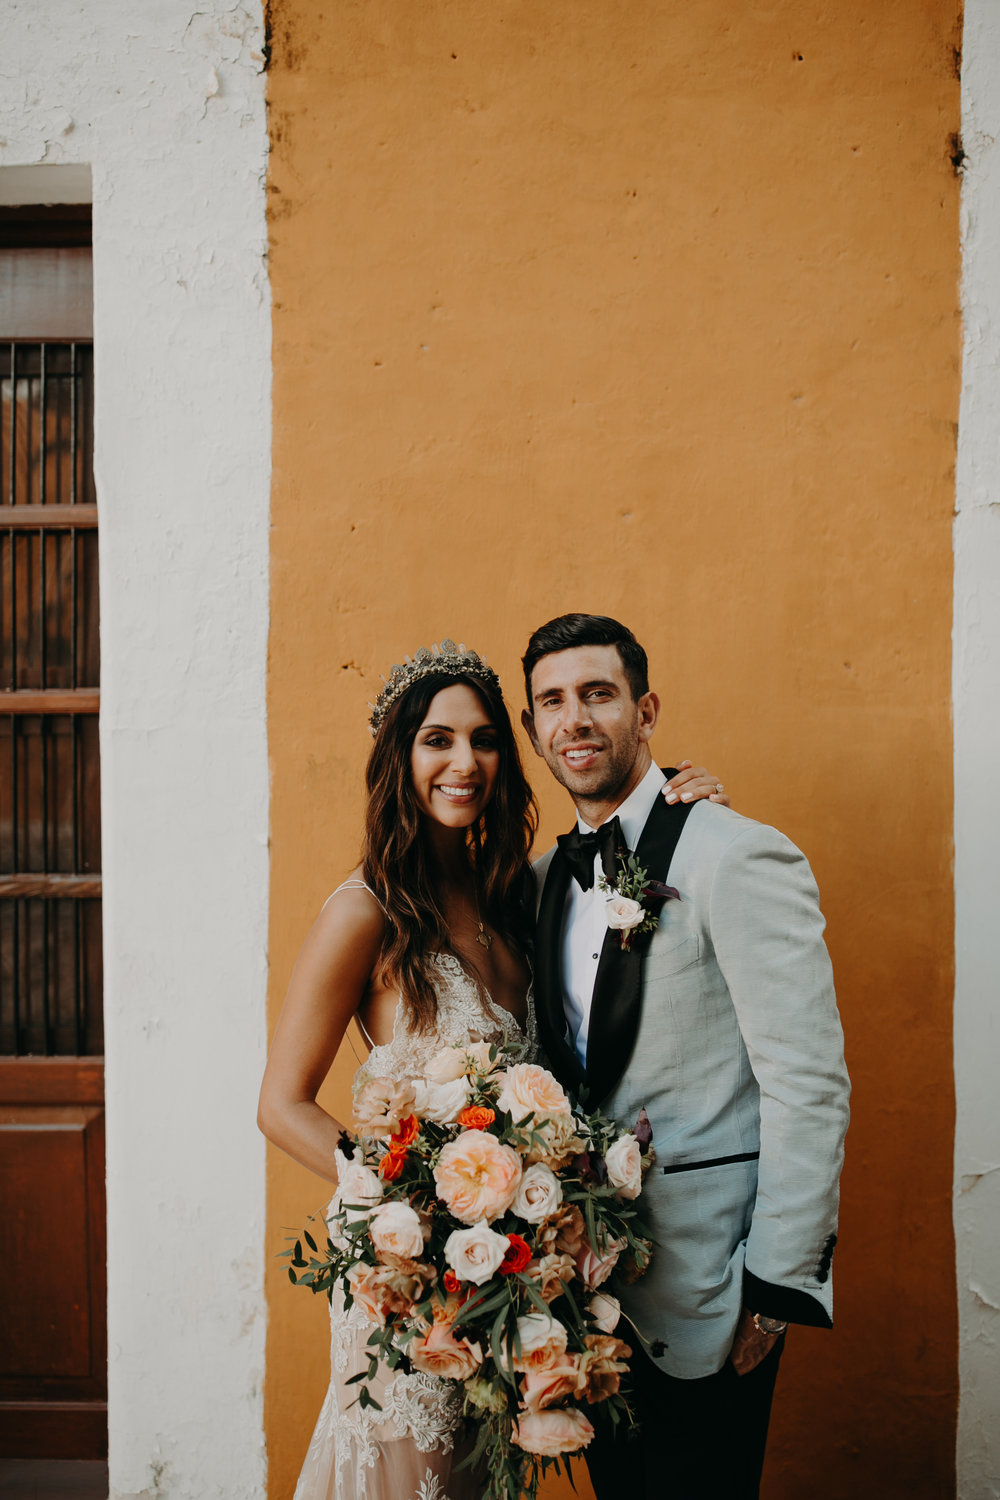 Hacienda Temozon Yucatan Mexico Wedding | Ida & Peter Emily Magers Photography-572.jpg